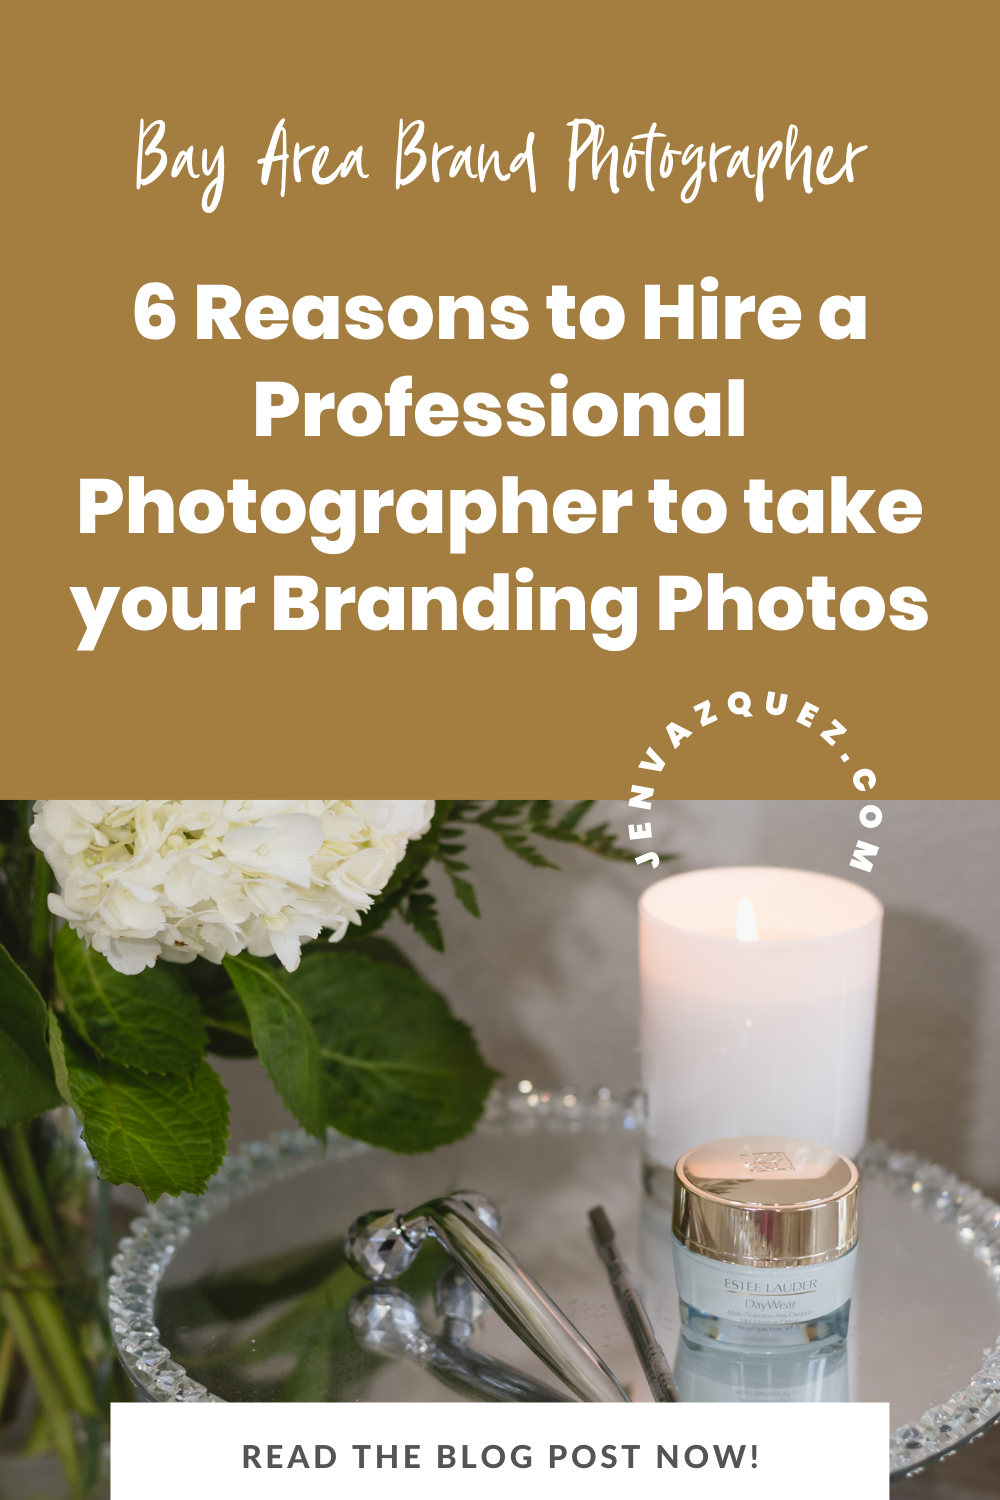 6 Reasons to Hire a Professional Photographer to take your Branding Photos by san jose brand photographer jen vazquez